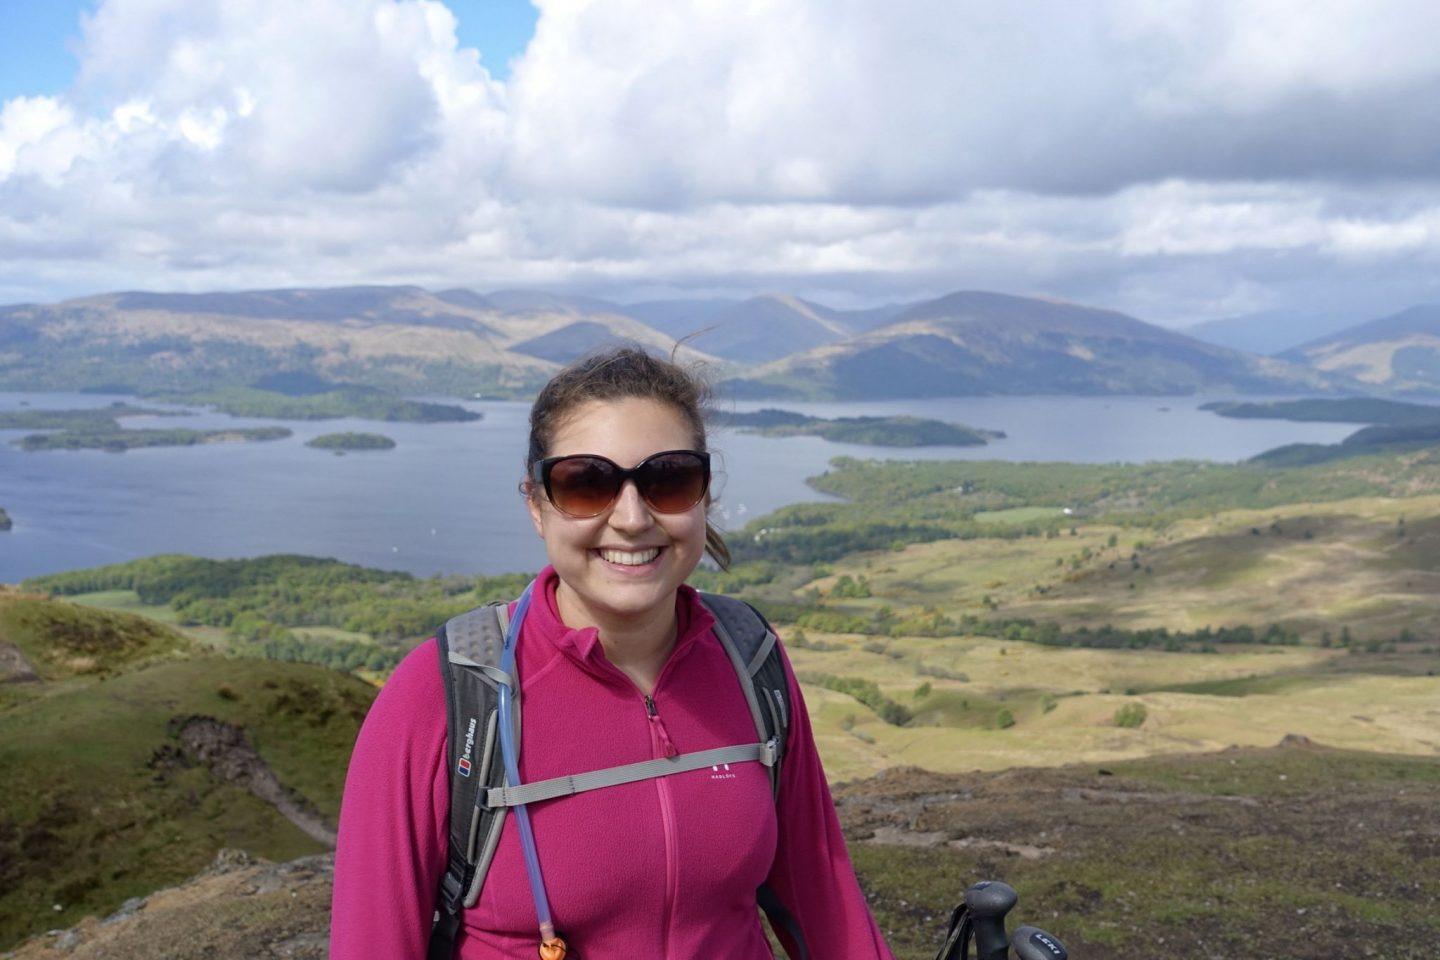 Girl walking the west highland way, wearing a pink fleece and black backpack with scenes of a lake and mountains behind her